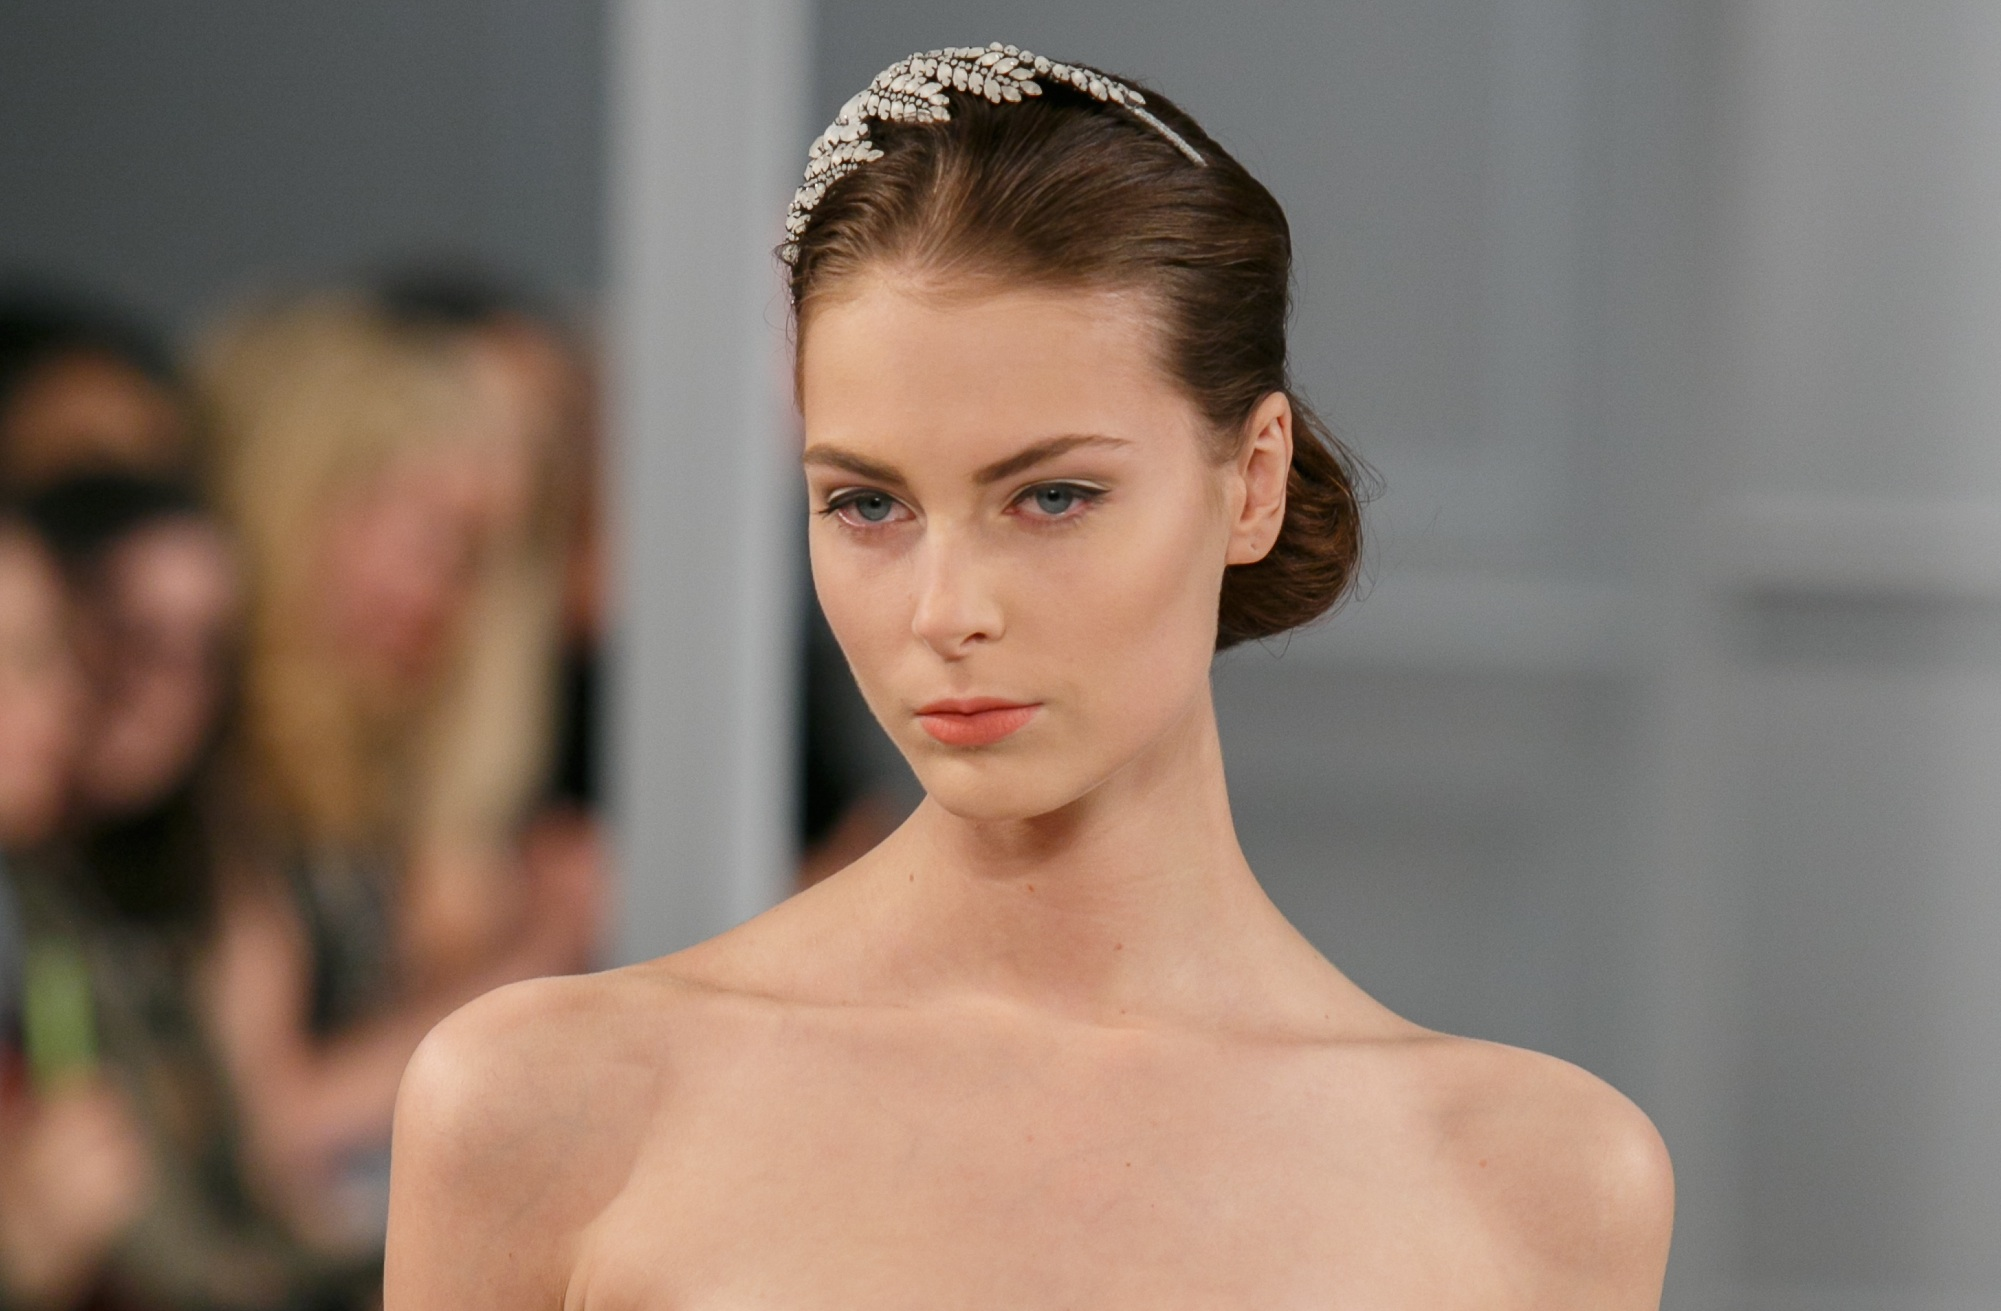 Wedding hair makeup trends for 2014 Monique Lhuillier 6 | OneWed.com